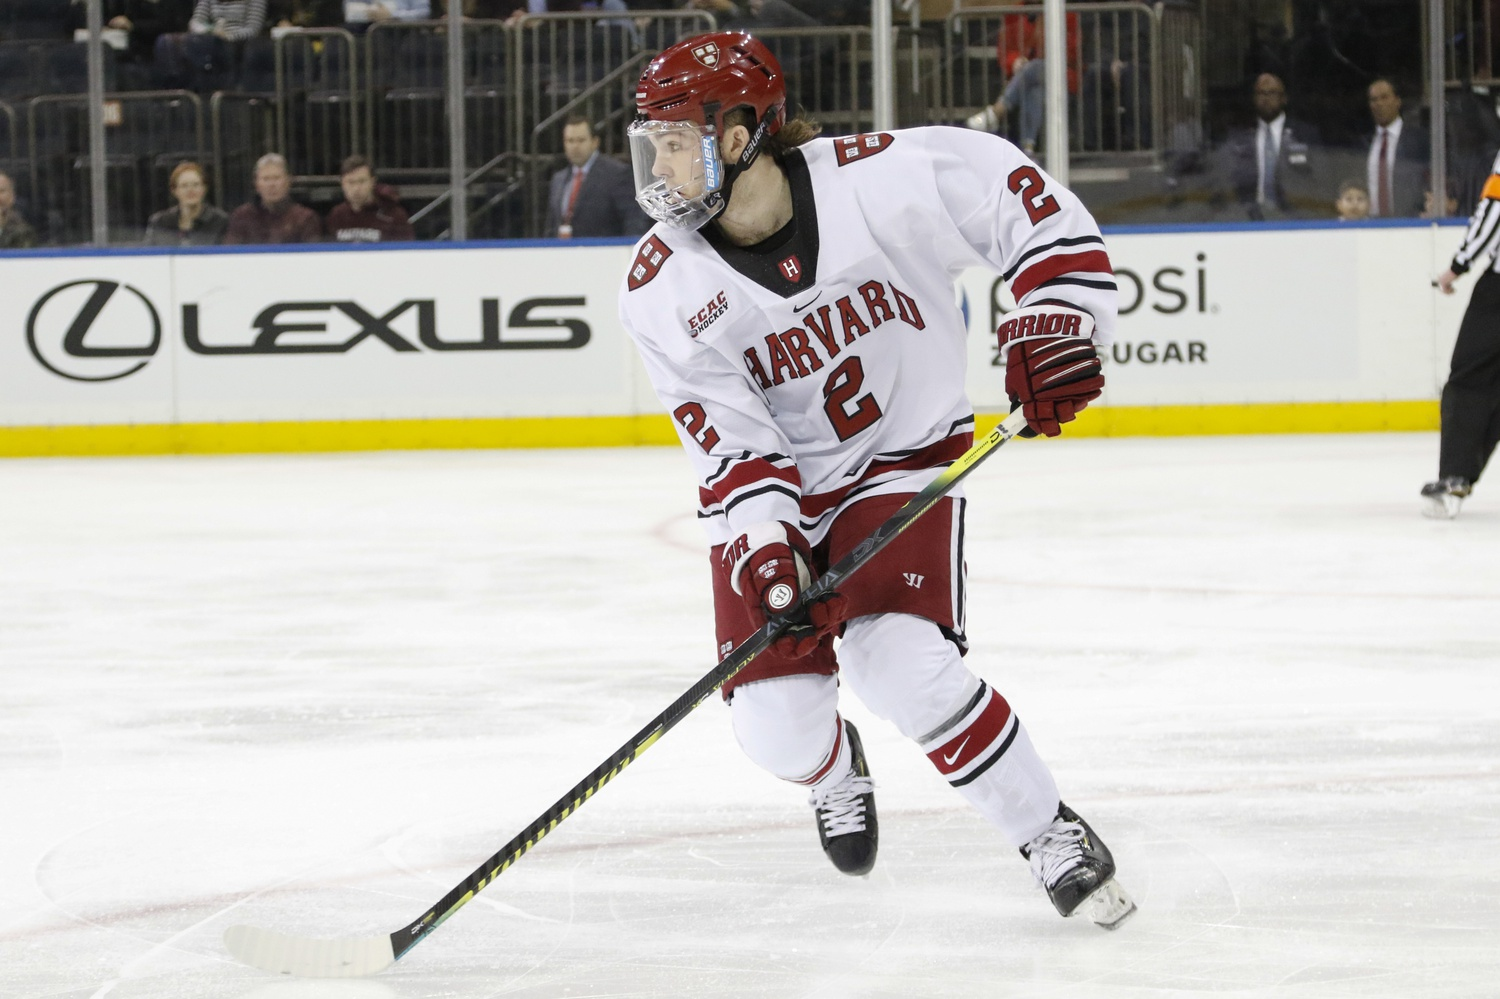 The Crimson's powerplay is converting at a rate of 29.4 percent, good for best in the country.